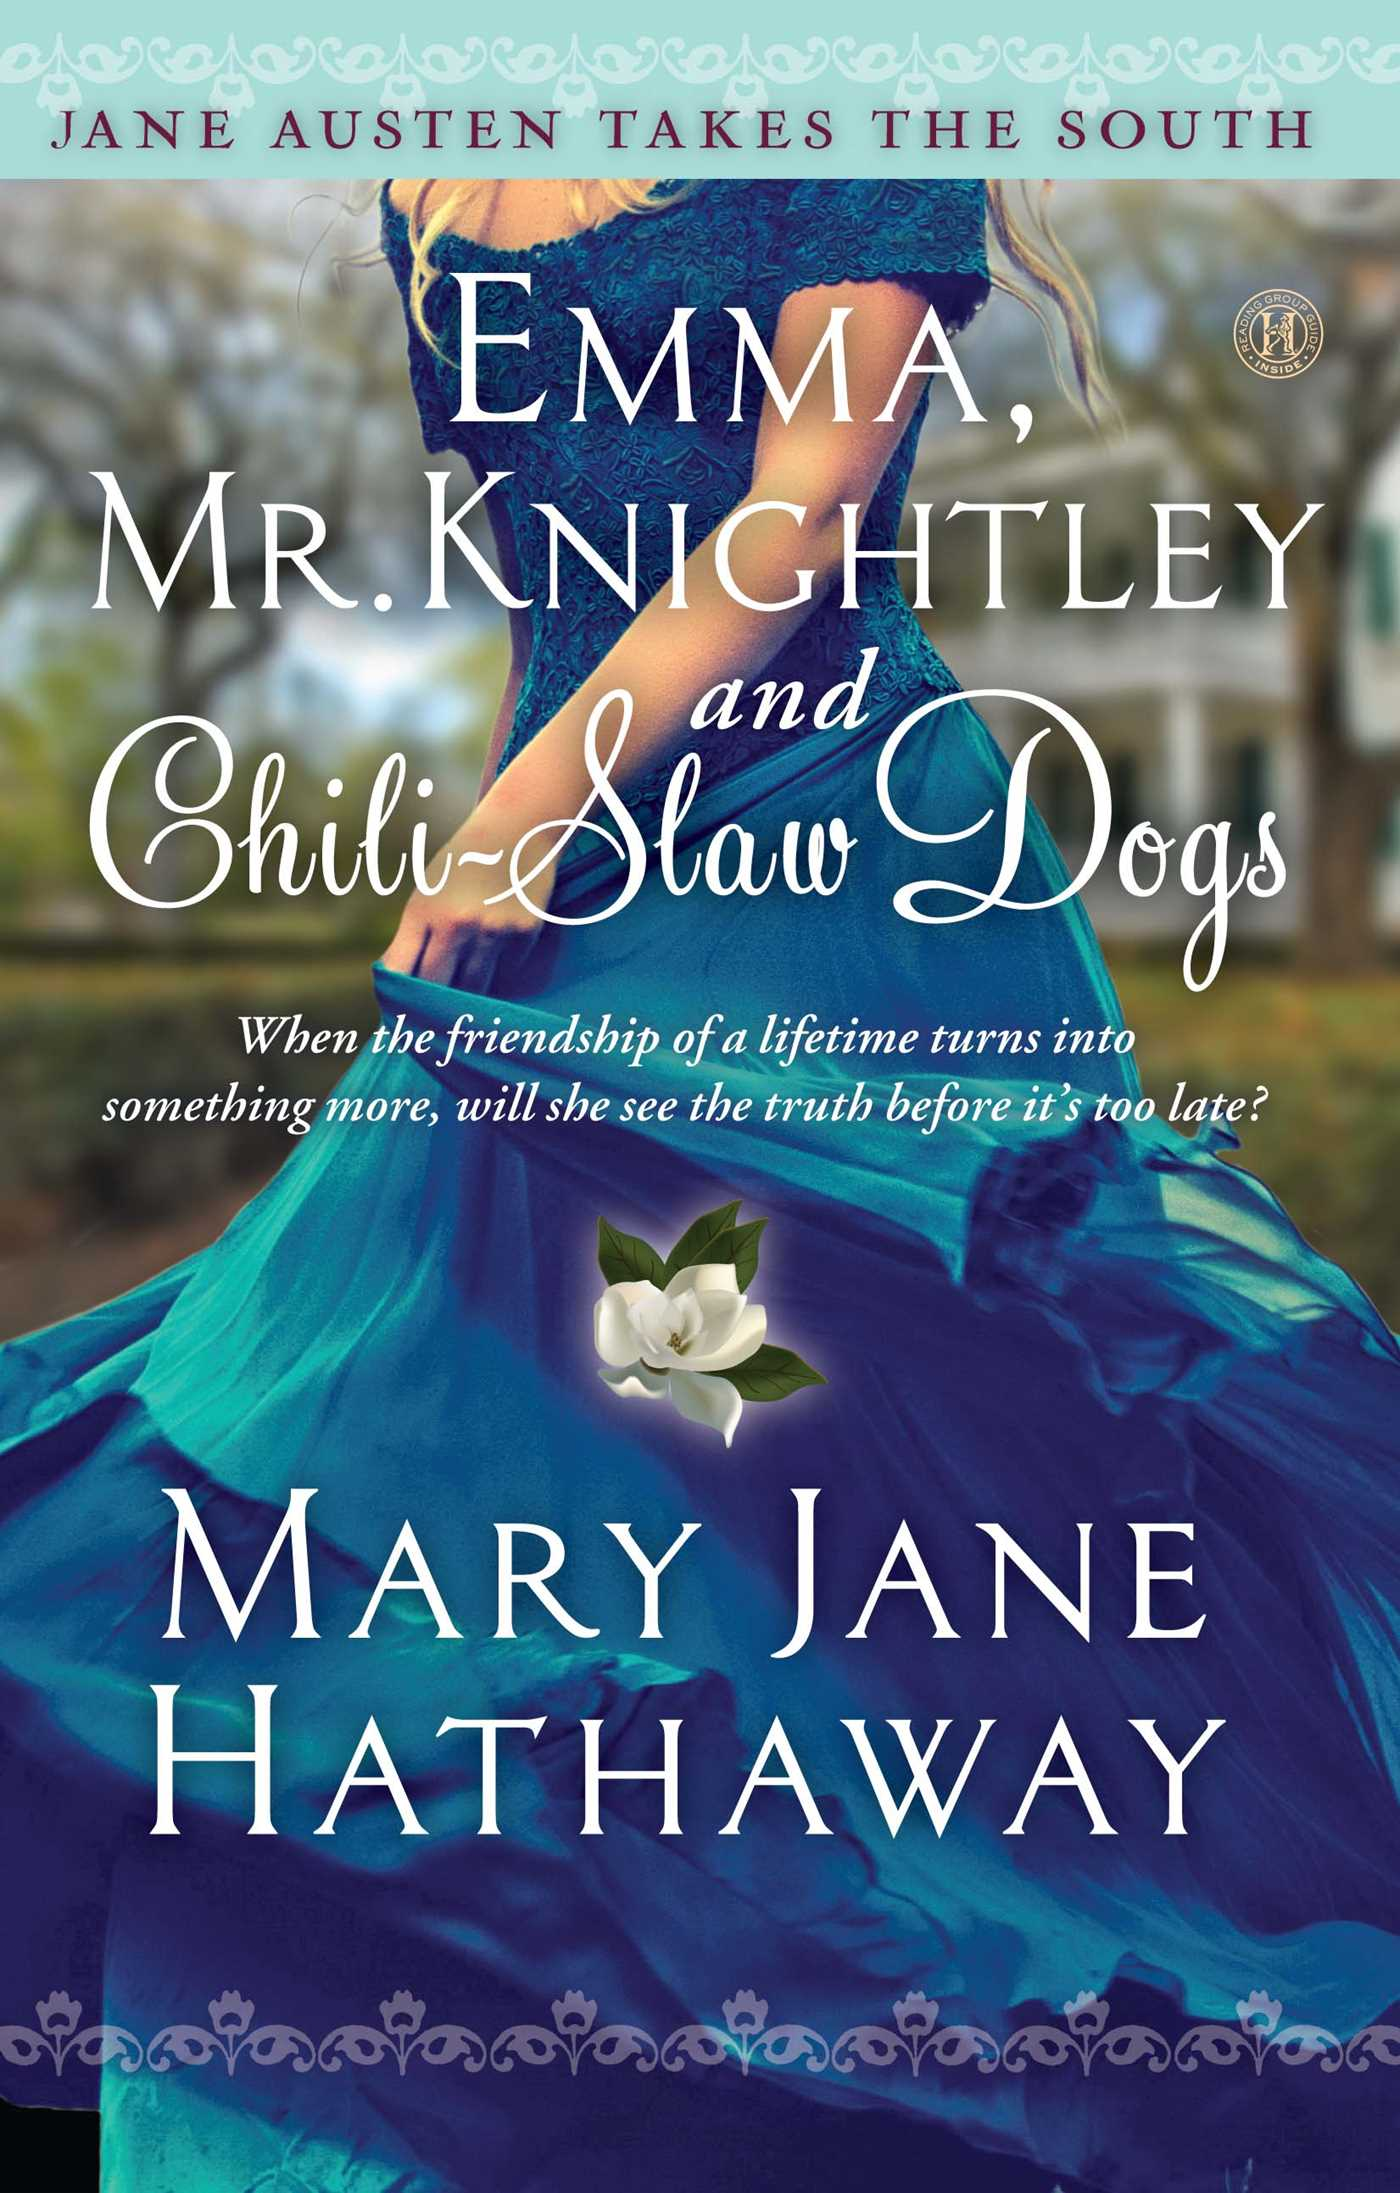 Emma-mr-knightley-and-chili-slaw-dogs-9781476777528_hr